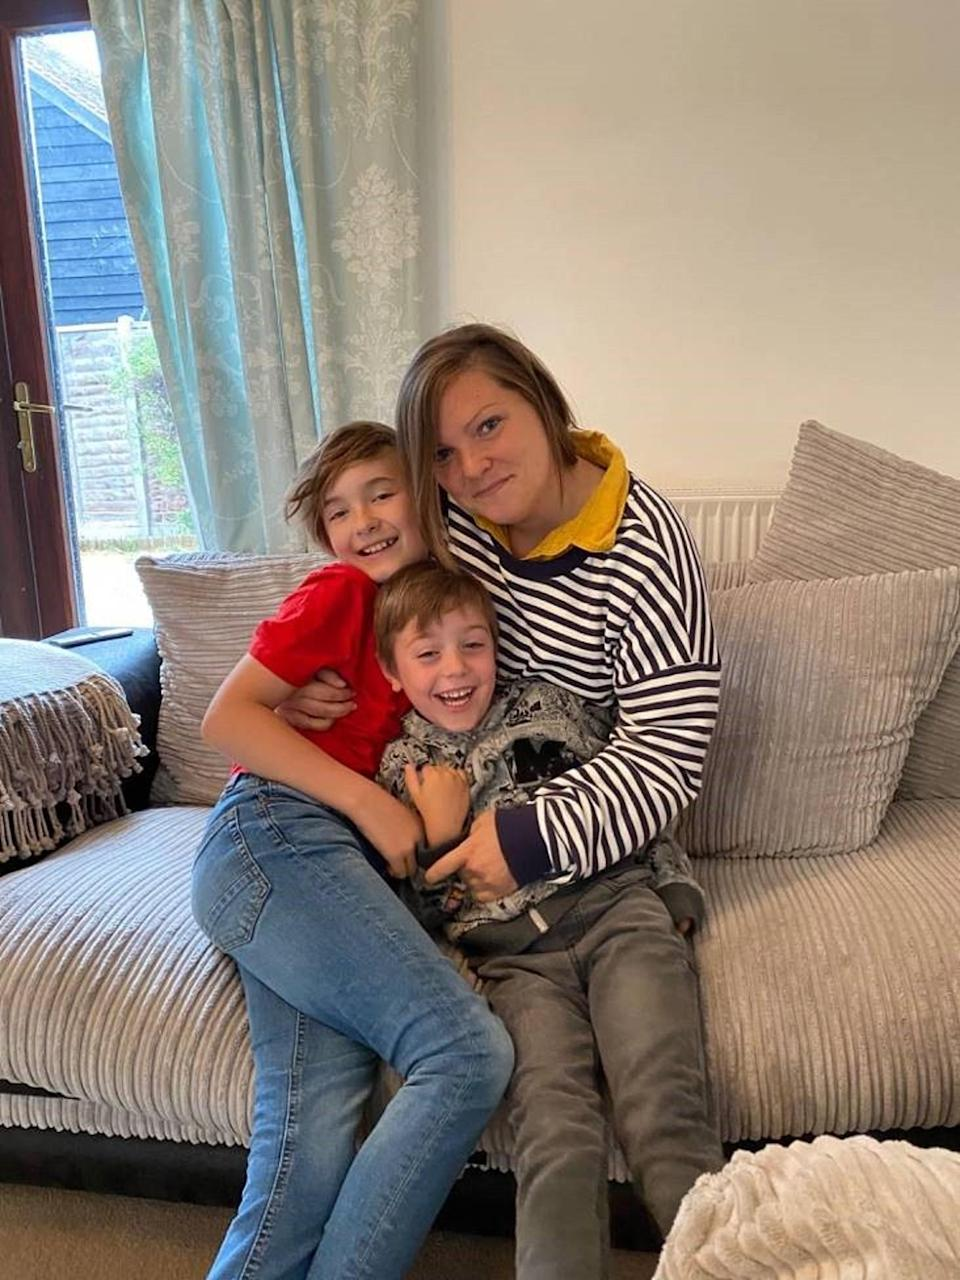 Sarah Smith, pictured with her nephews, gave a home to a child during the coronavirus pandemic